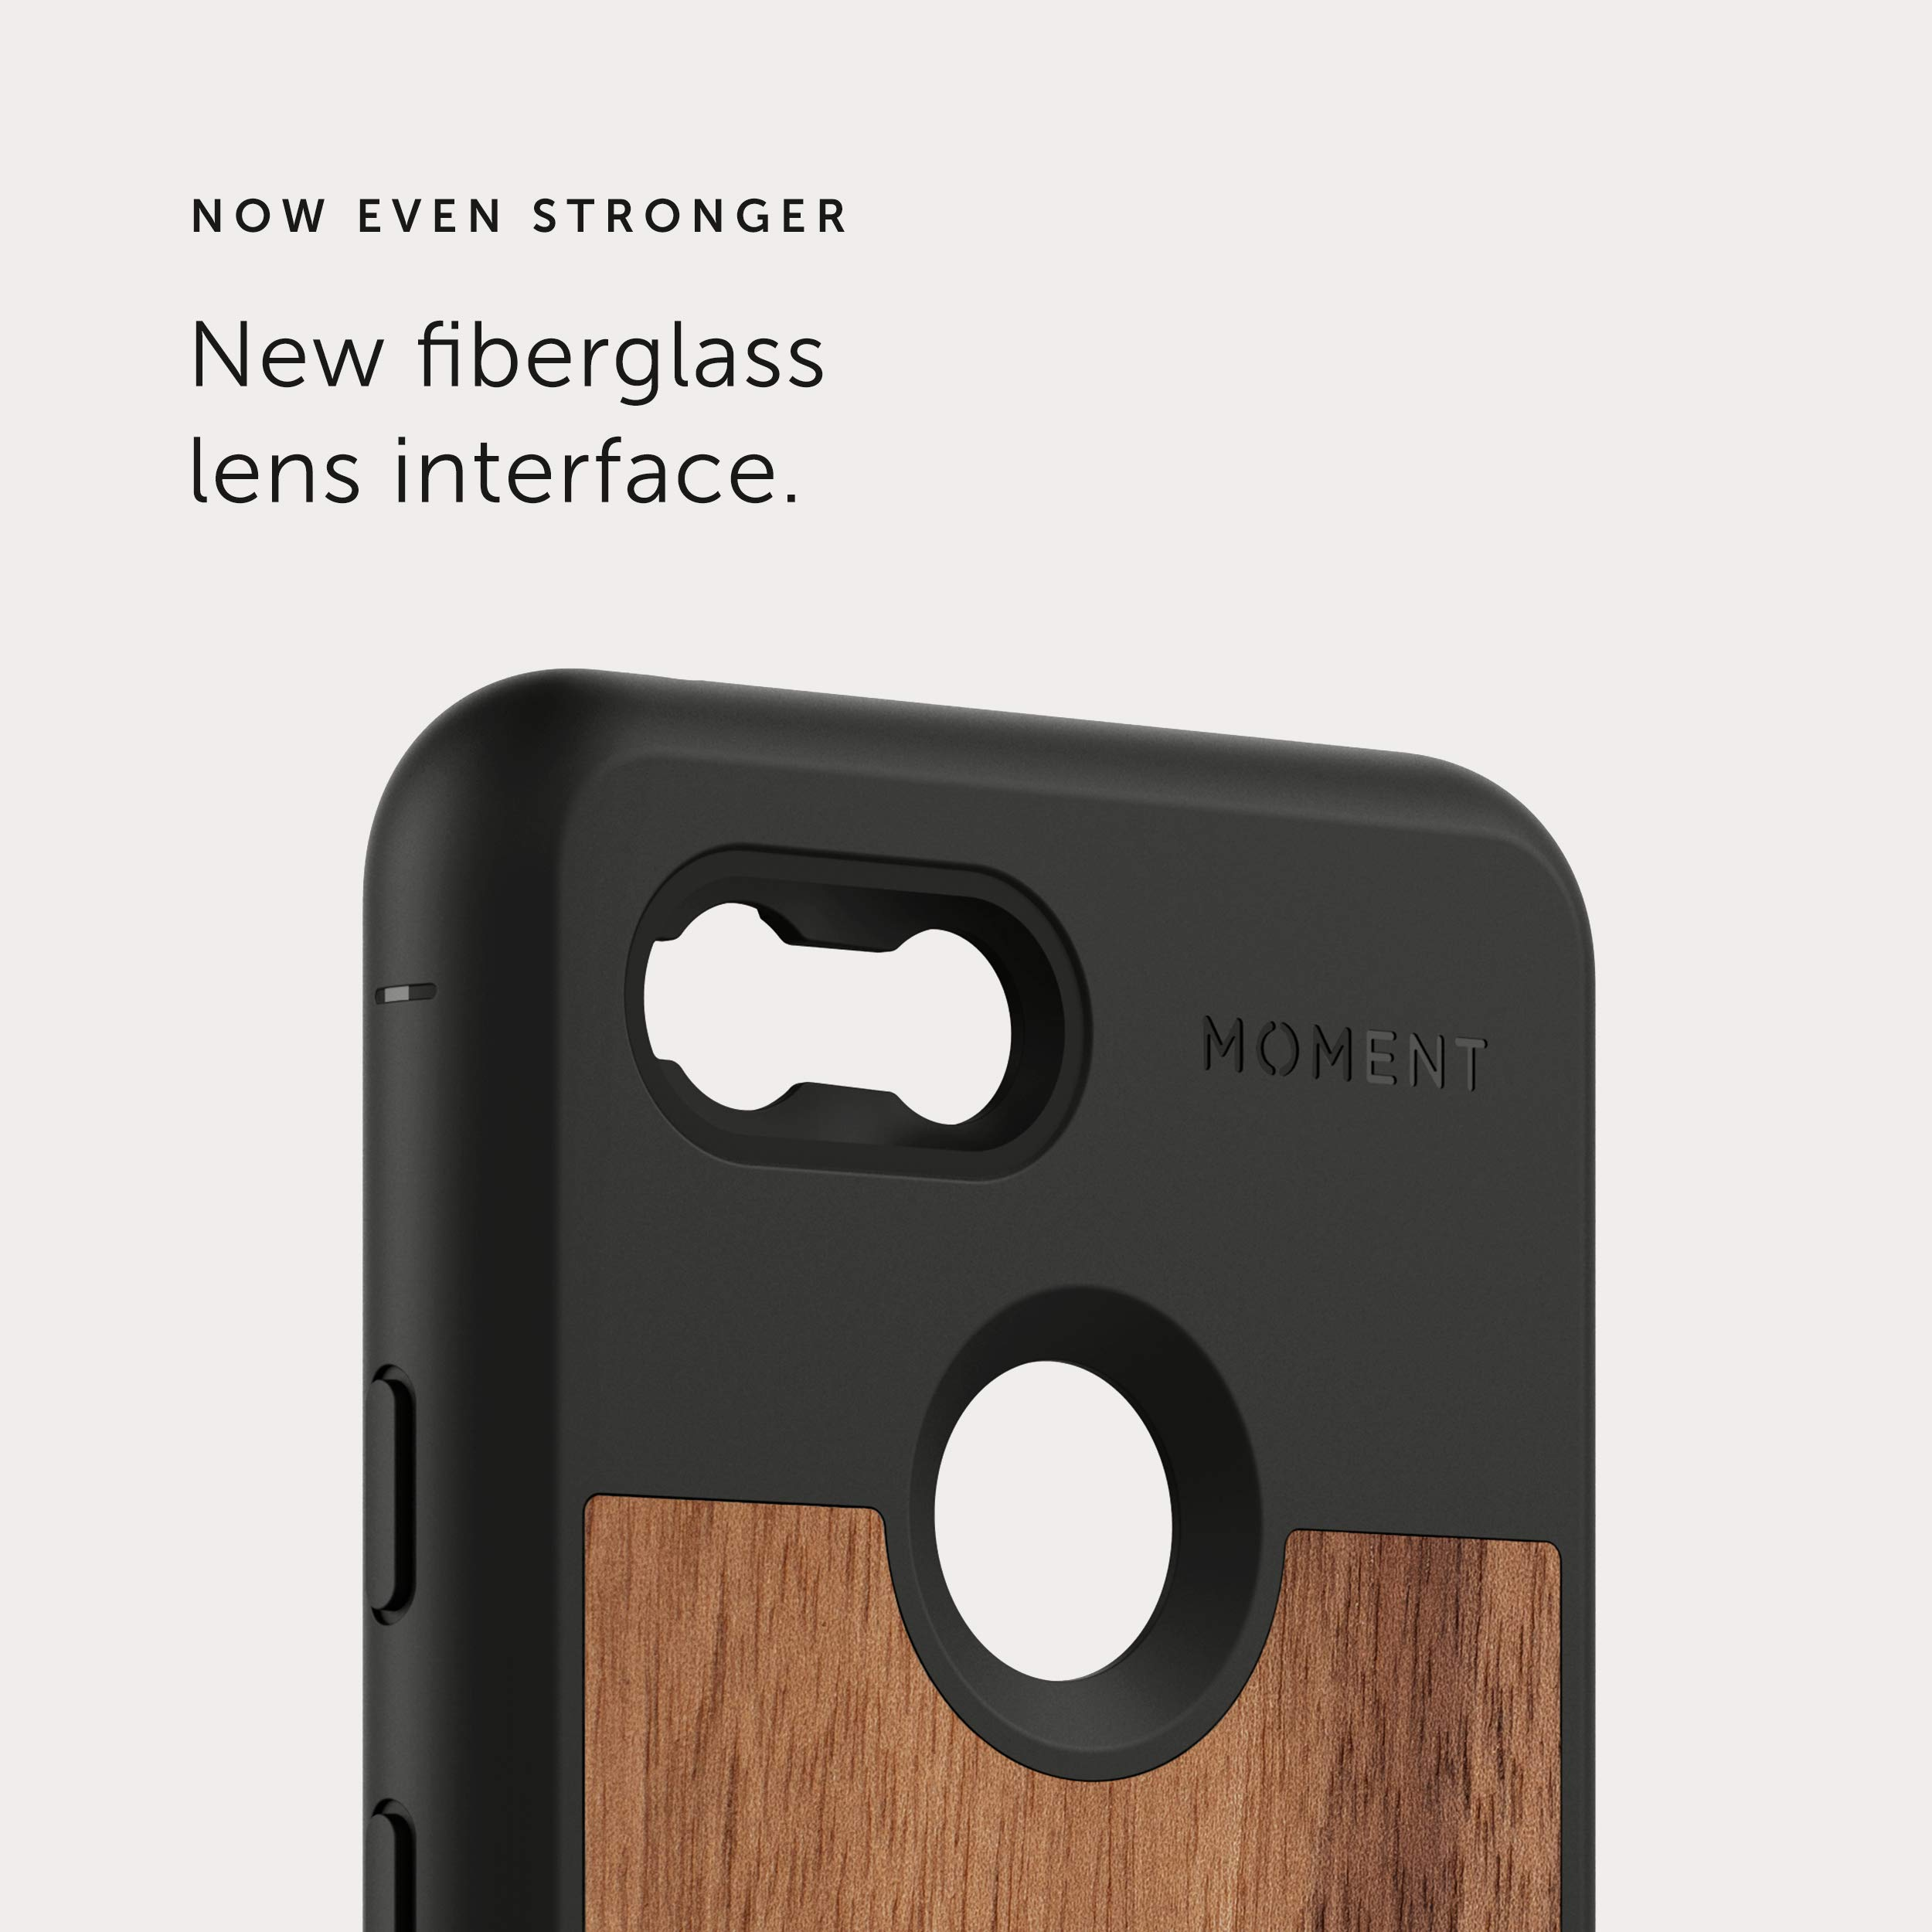 Pixel 3 Case || Moment Photo Case in Walnut Wood - Thin, Protective, Wrist Strap Friendly case for Camera Lovers.